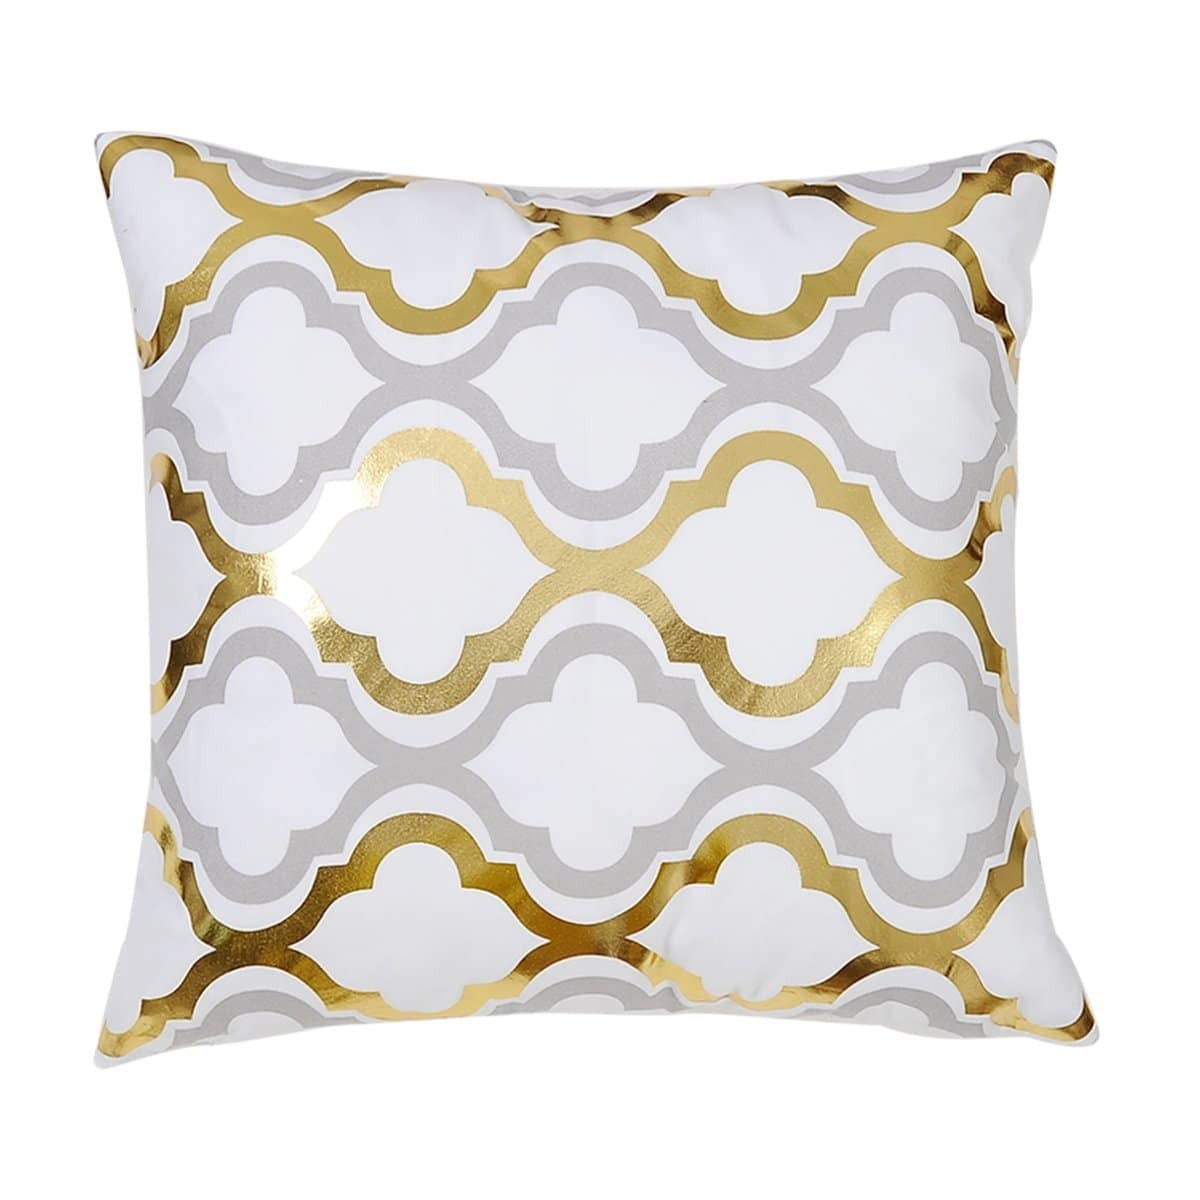 SHEIN coupon: Moroccan Pattern Cushion Cover